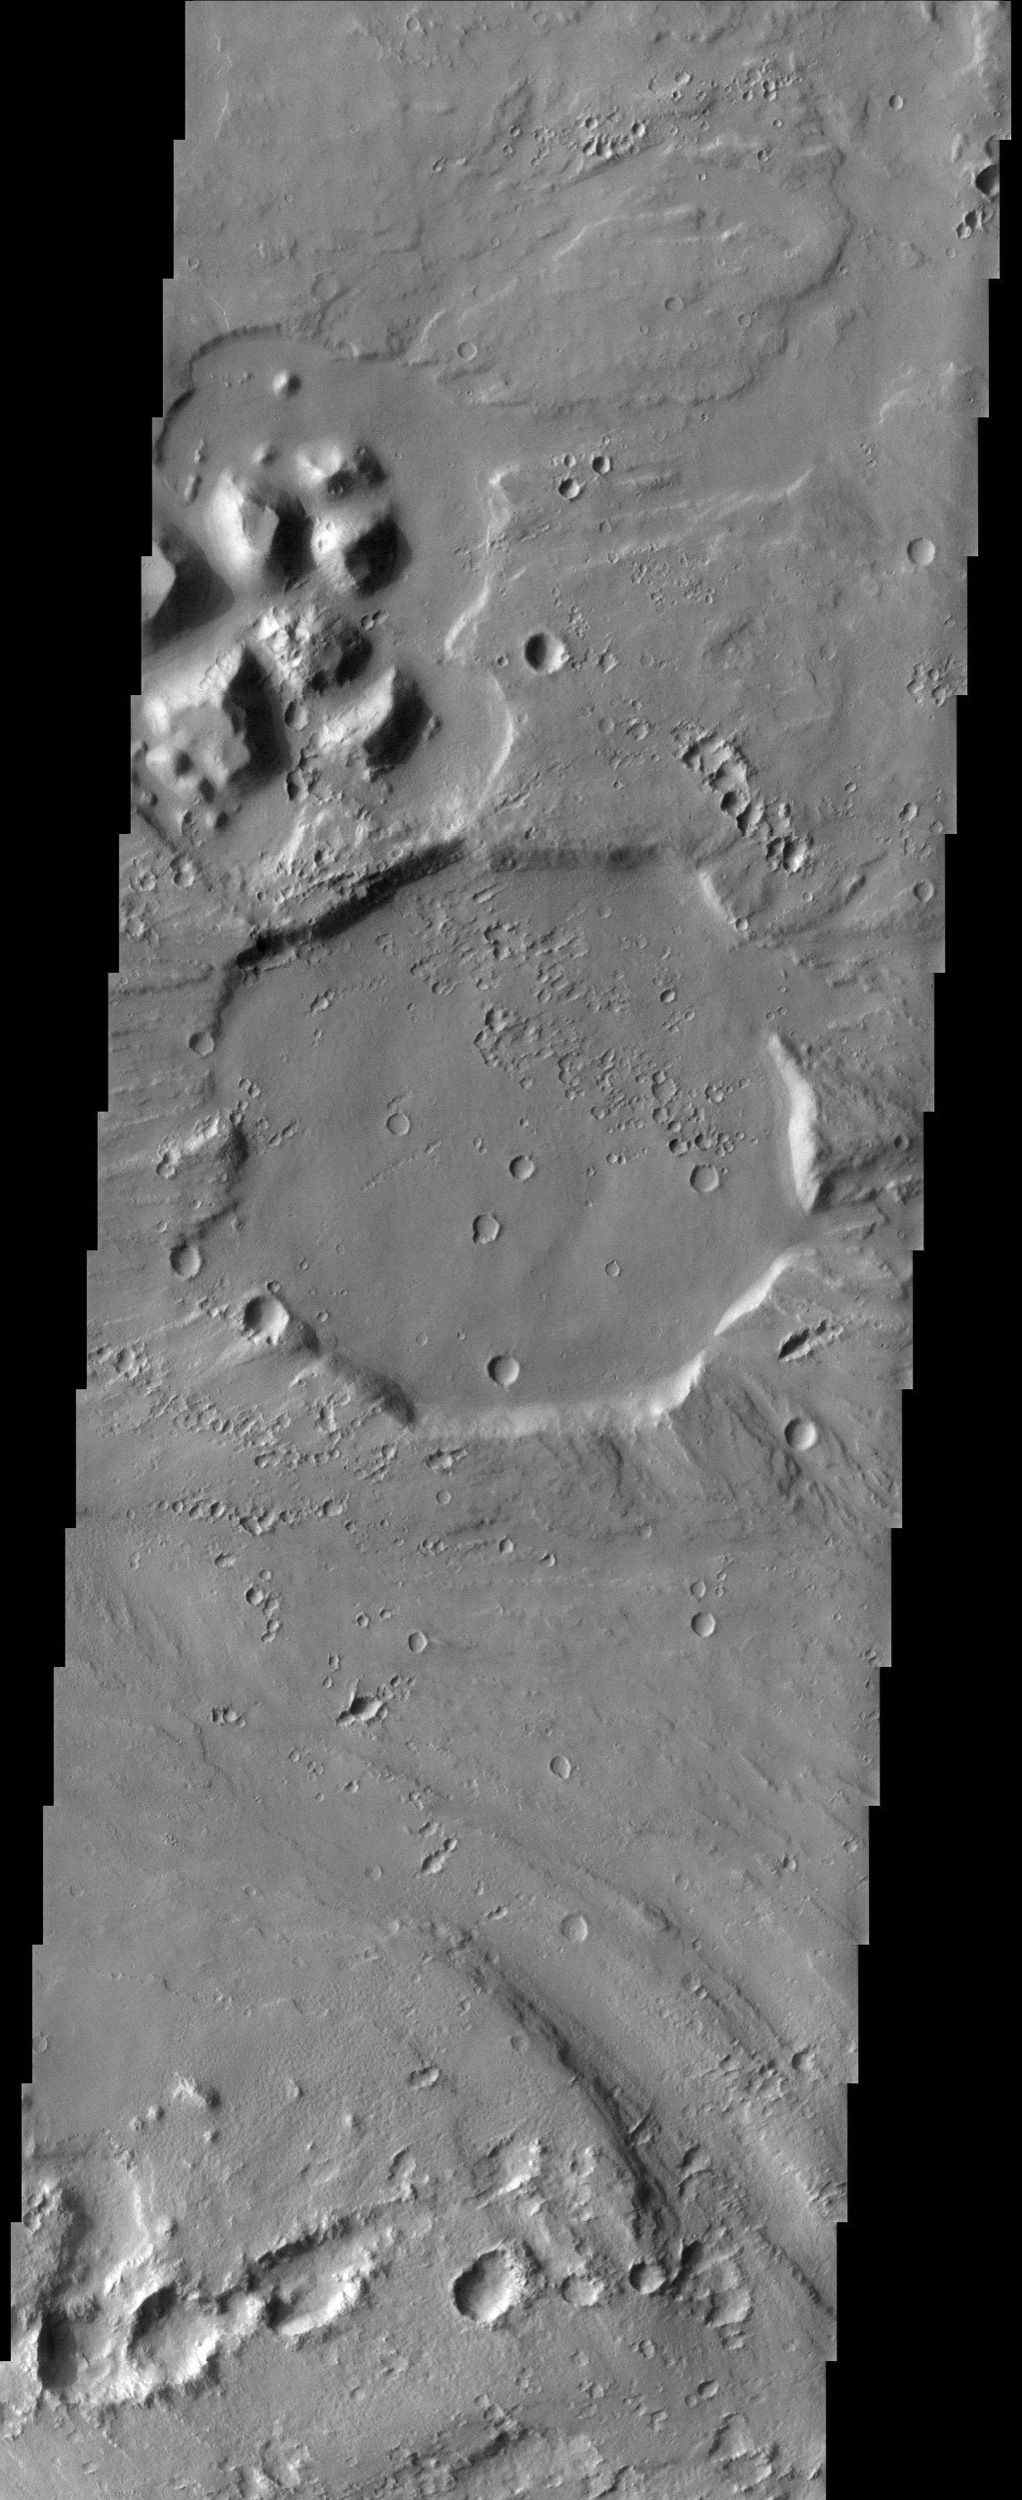 With its rim eroded off by catastrophic floods in Tiu Vallis and its strangely angular shape, this 12 km (about 7.5 mile) diameter crater imaged by NASA's Mars Odyssey spacecraft looks vaguely like a stop sign.